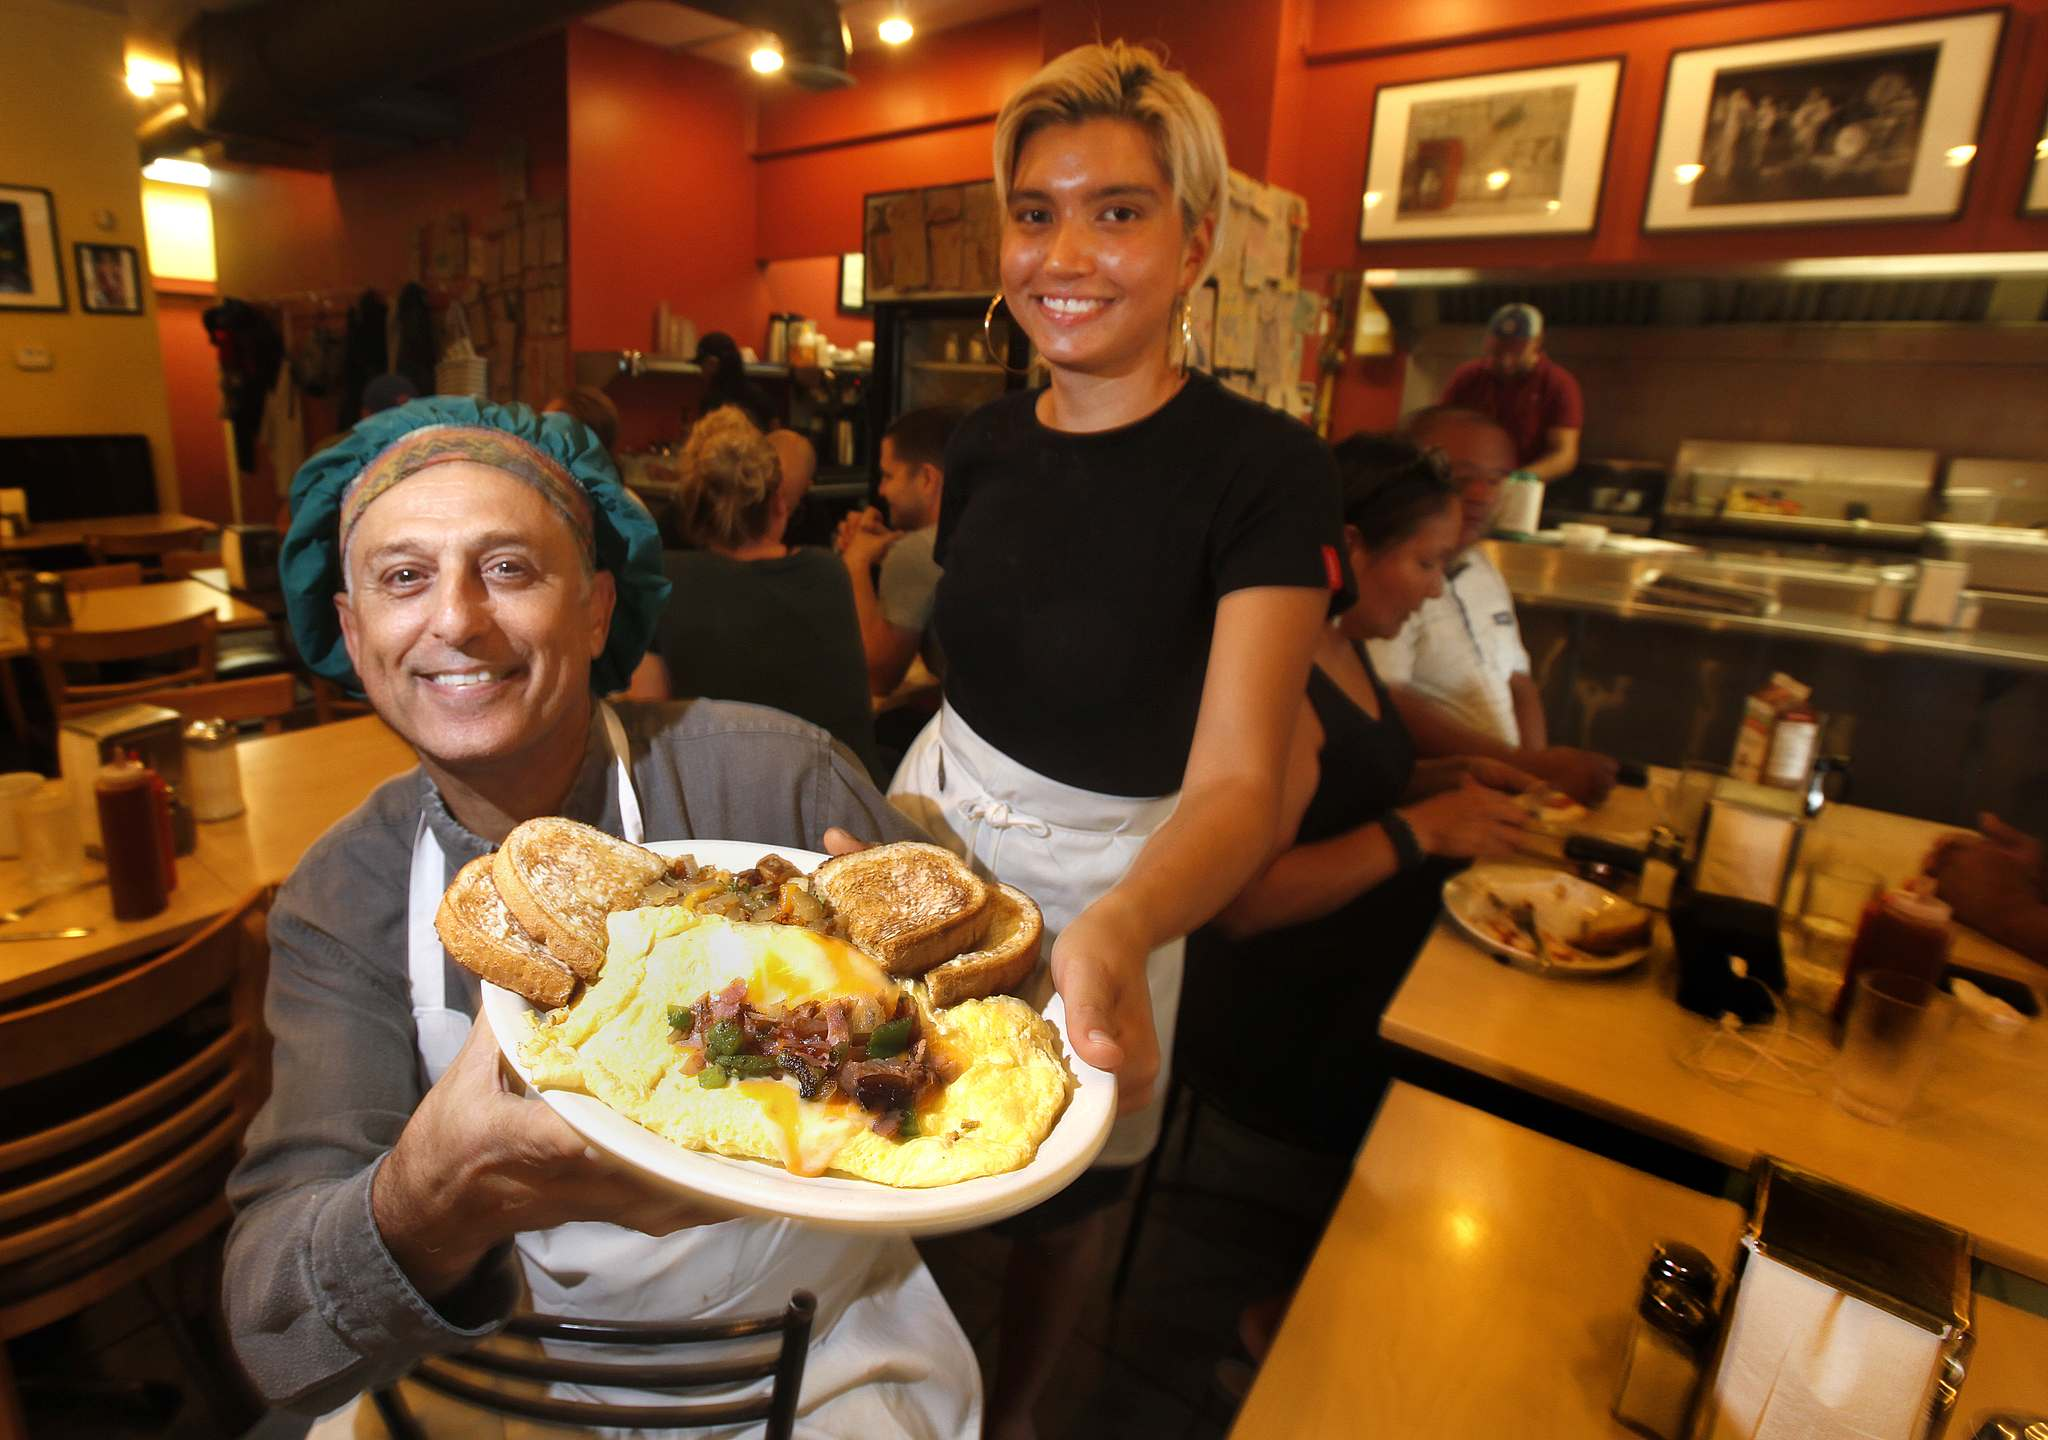 PHIL HOSSACK / WINNIPEG FREE PRESS</p><p>Ami Hassan and Chantel Nygaard show off the Falafel Place's giant Denver omelette.</p>